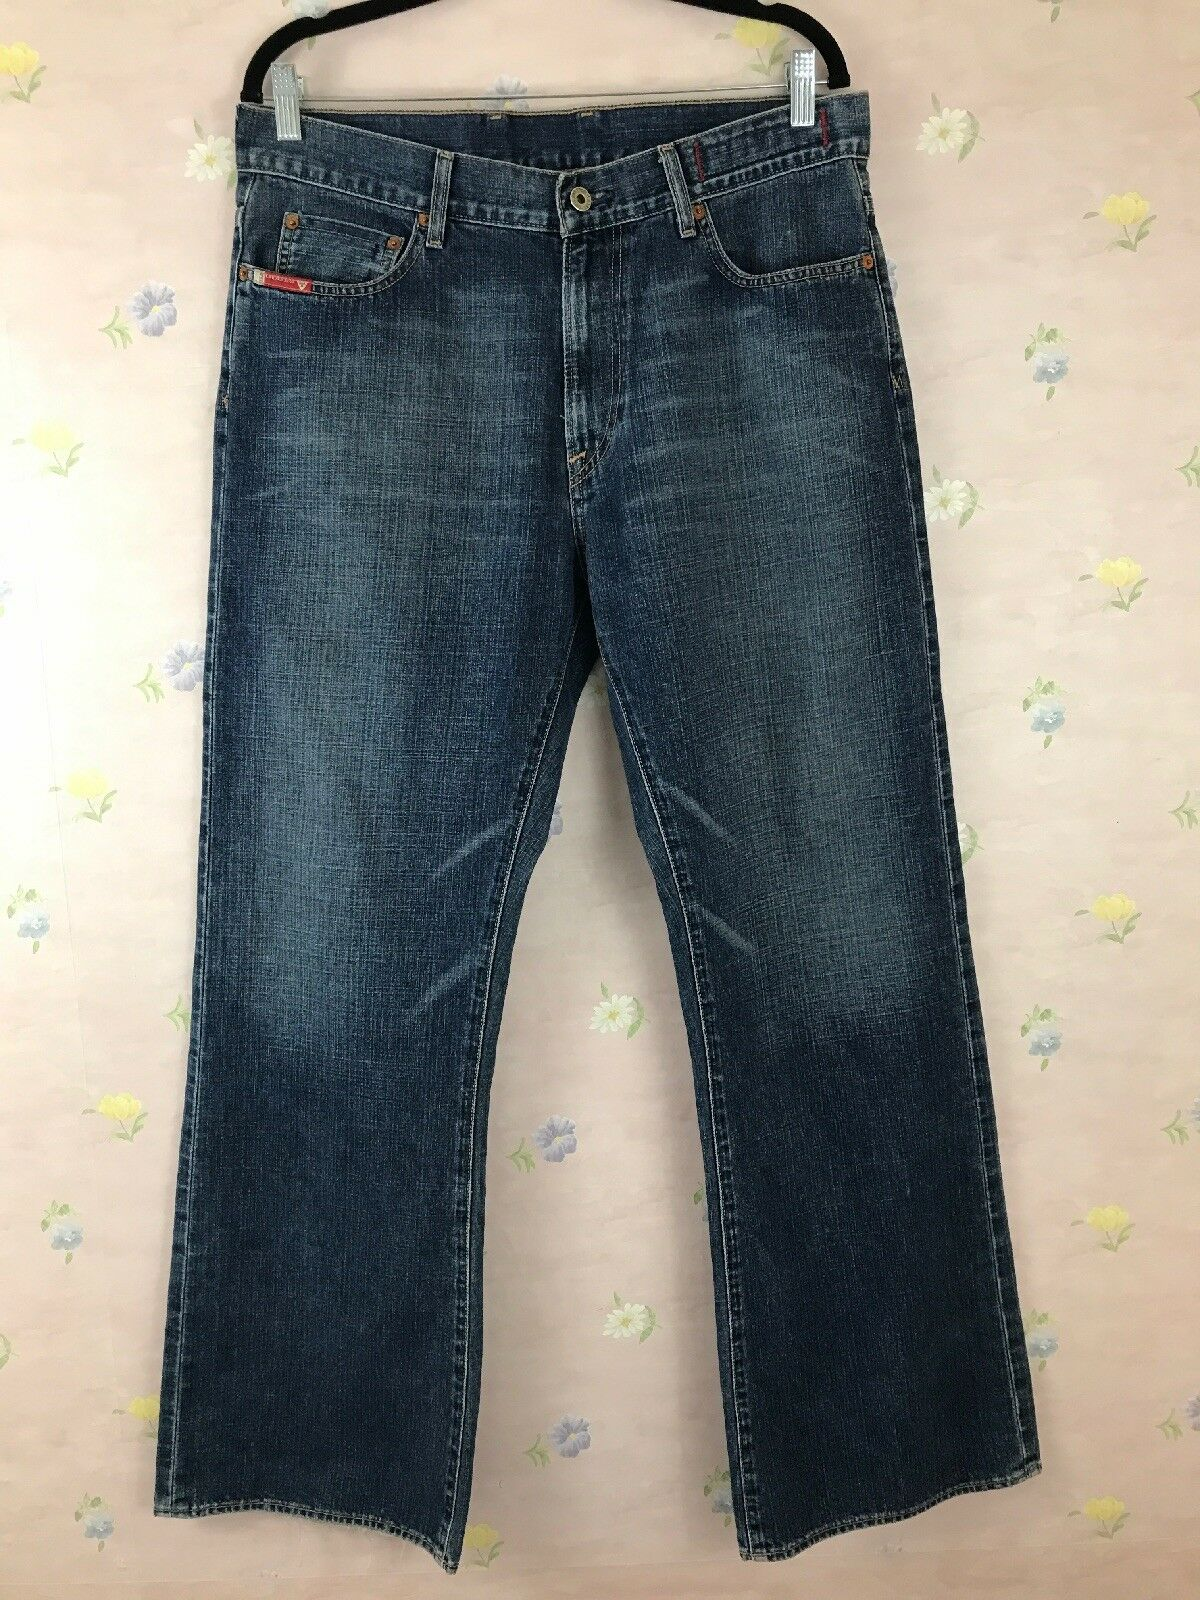 Guess Jeans USA Men's Jeans 34x32 Relaxed